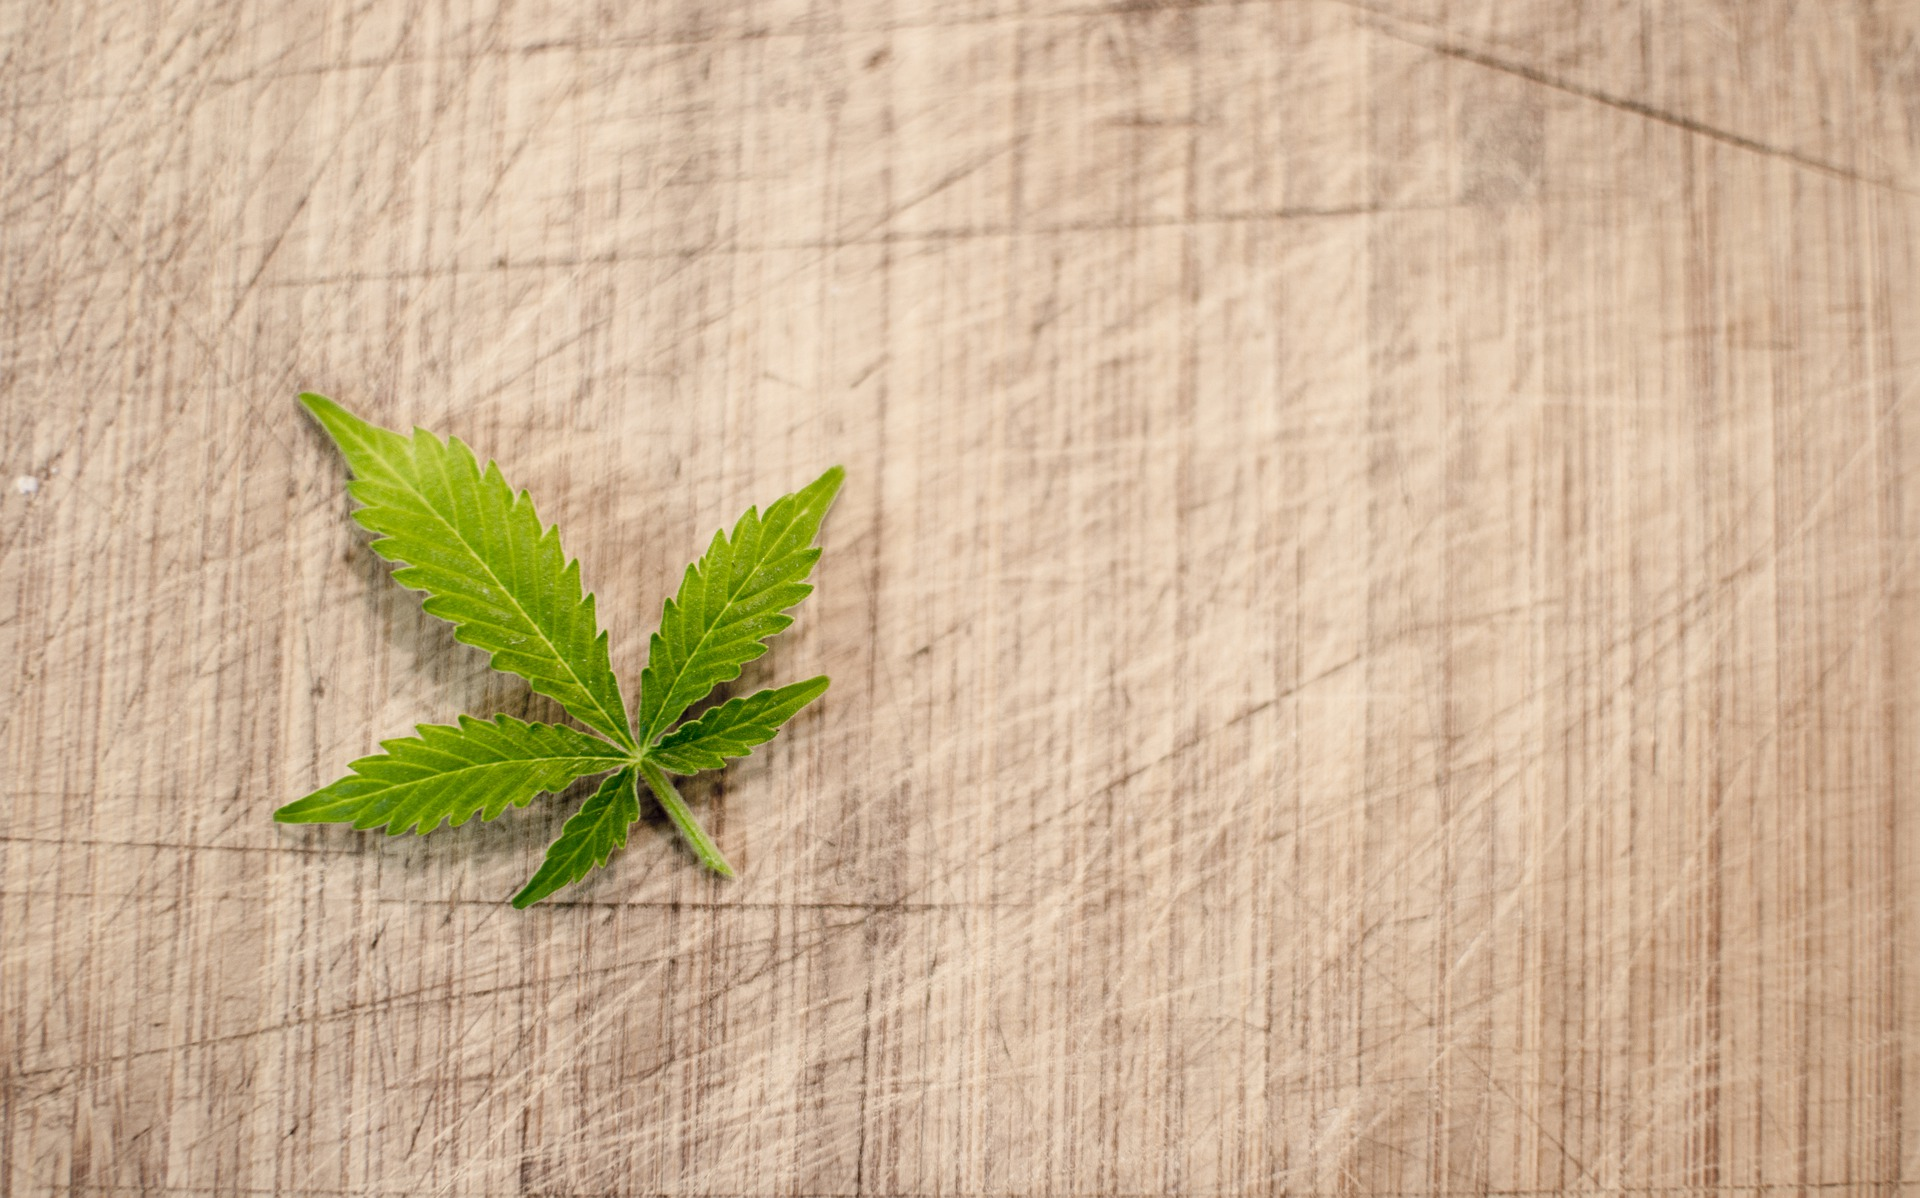 A small green cannabis leaf on a wicker mat